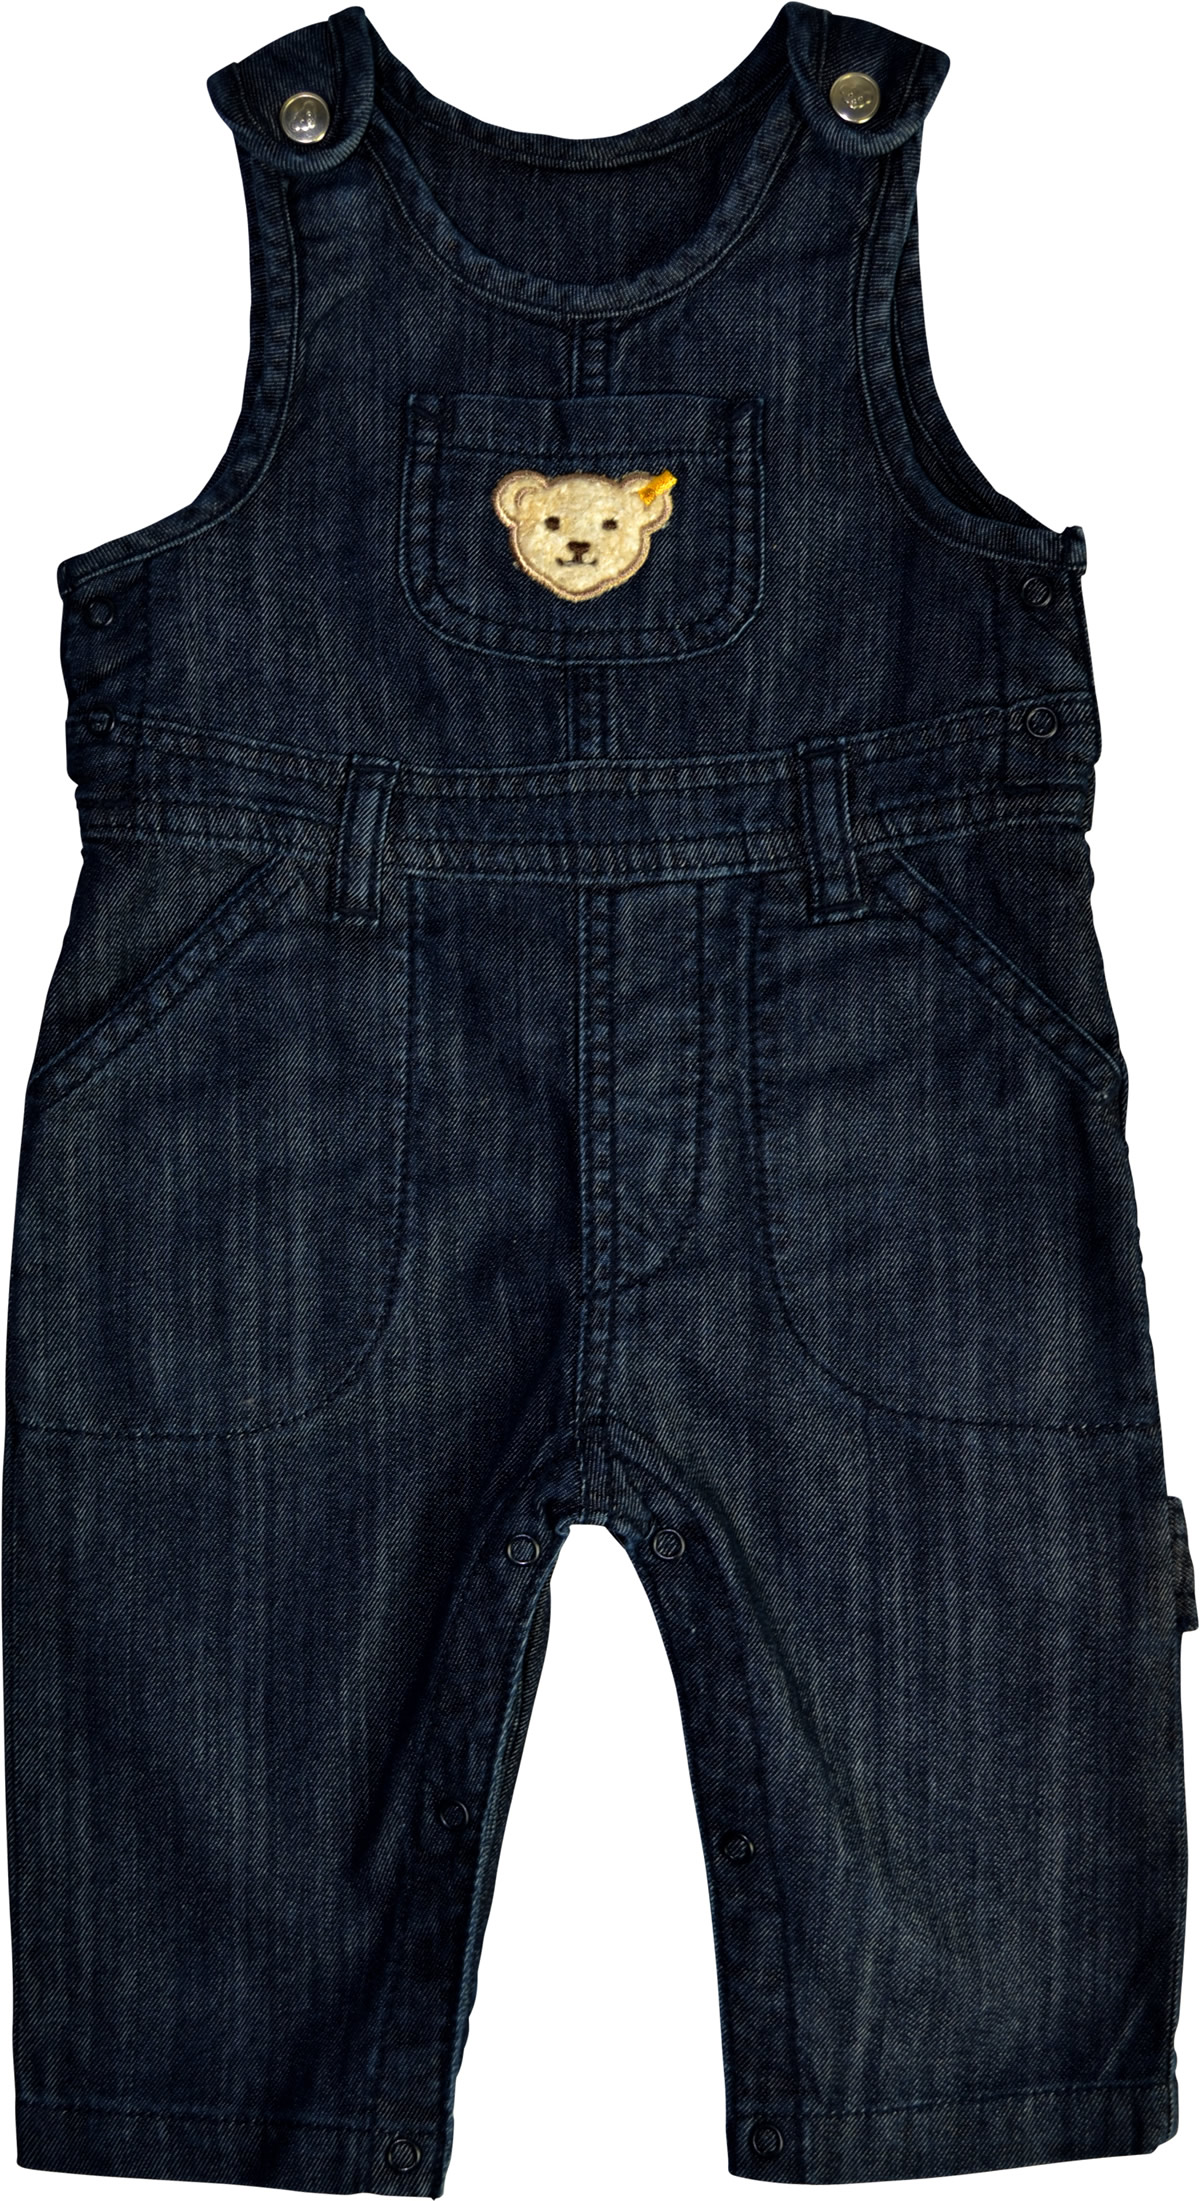 727f786b0076b Dark blue denim dungarees from the